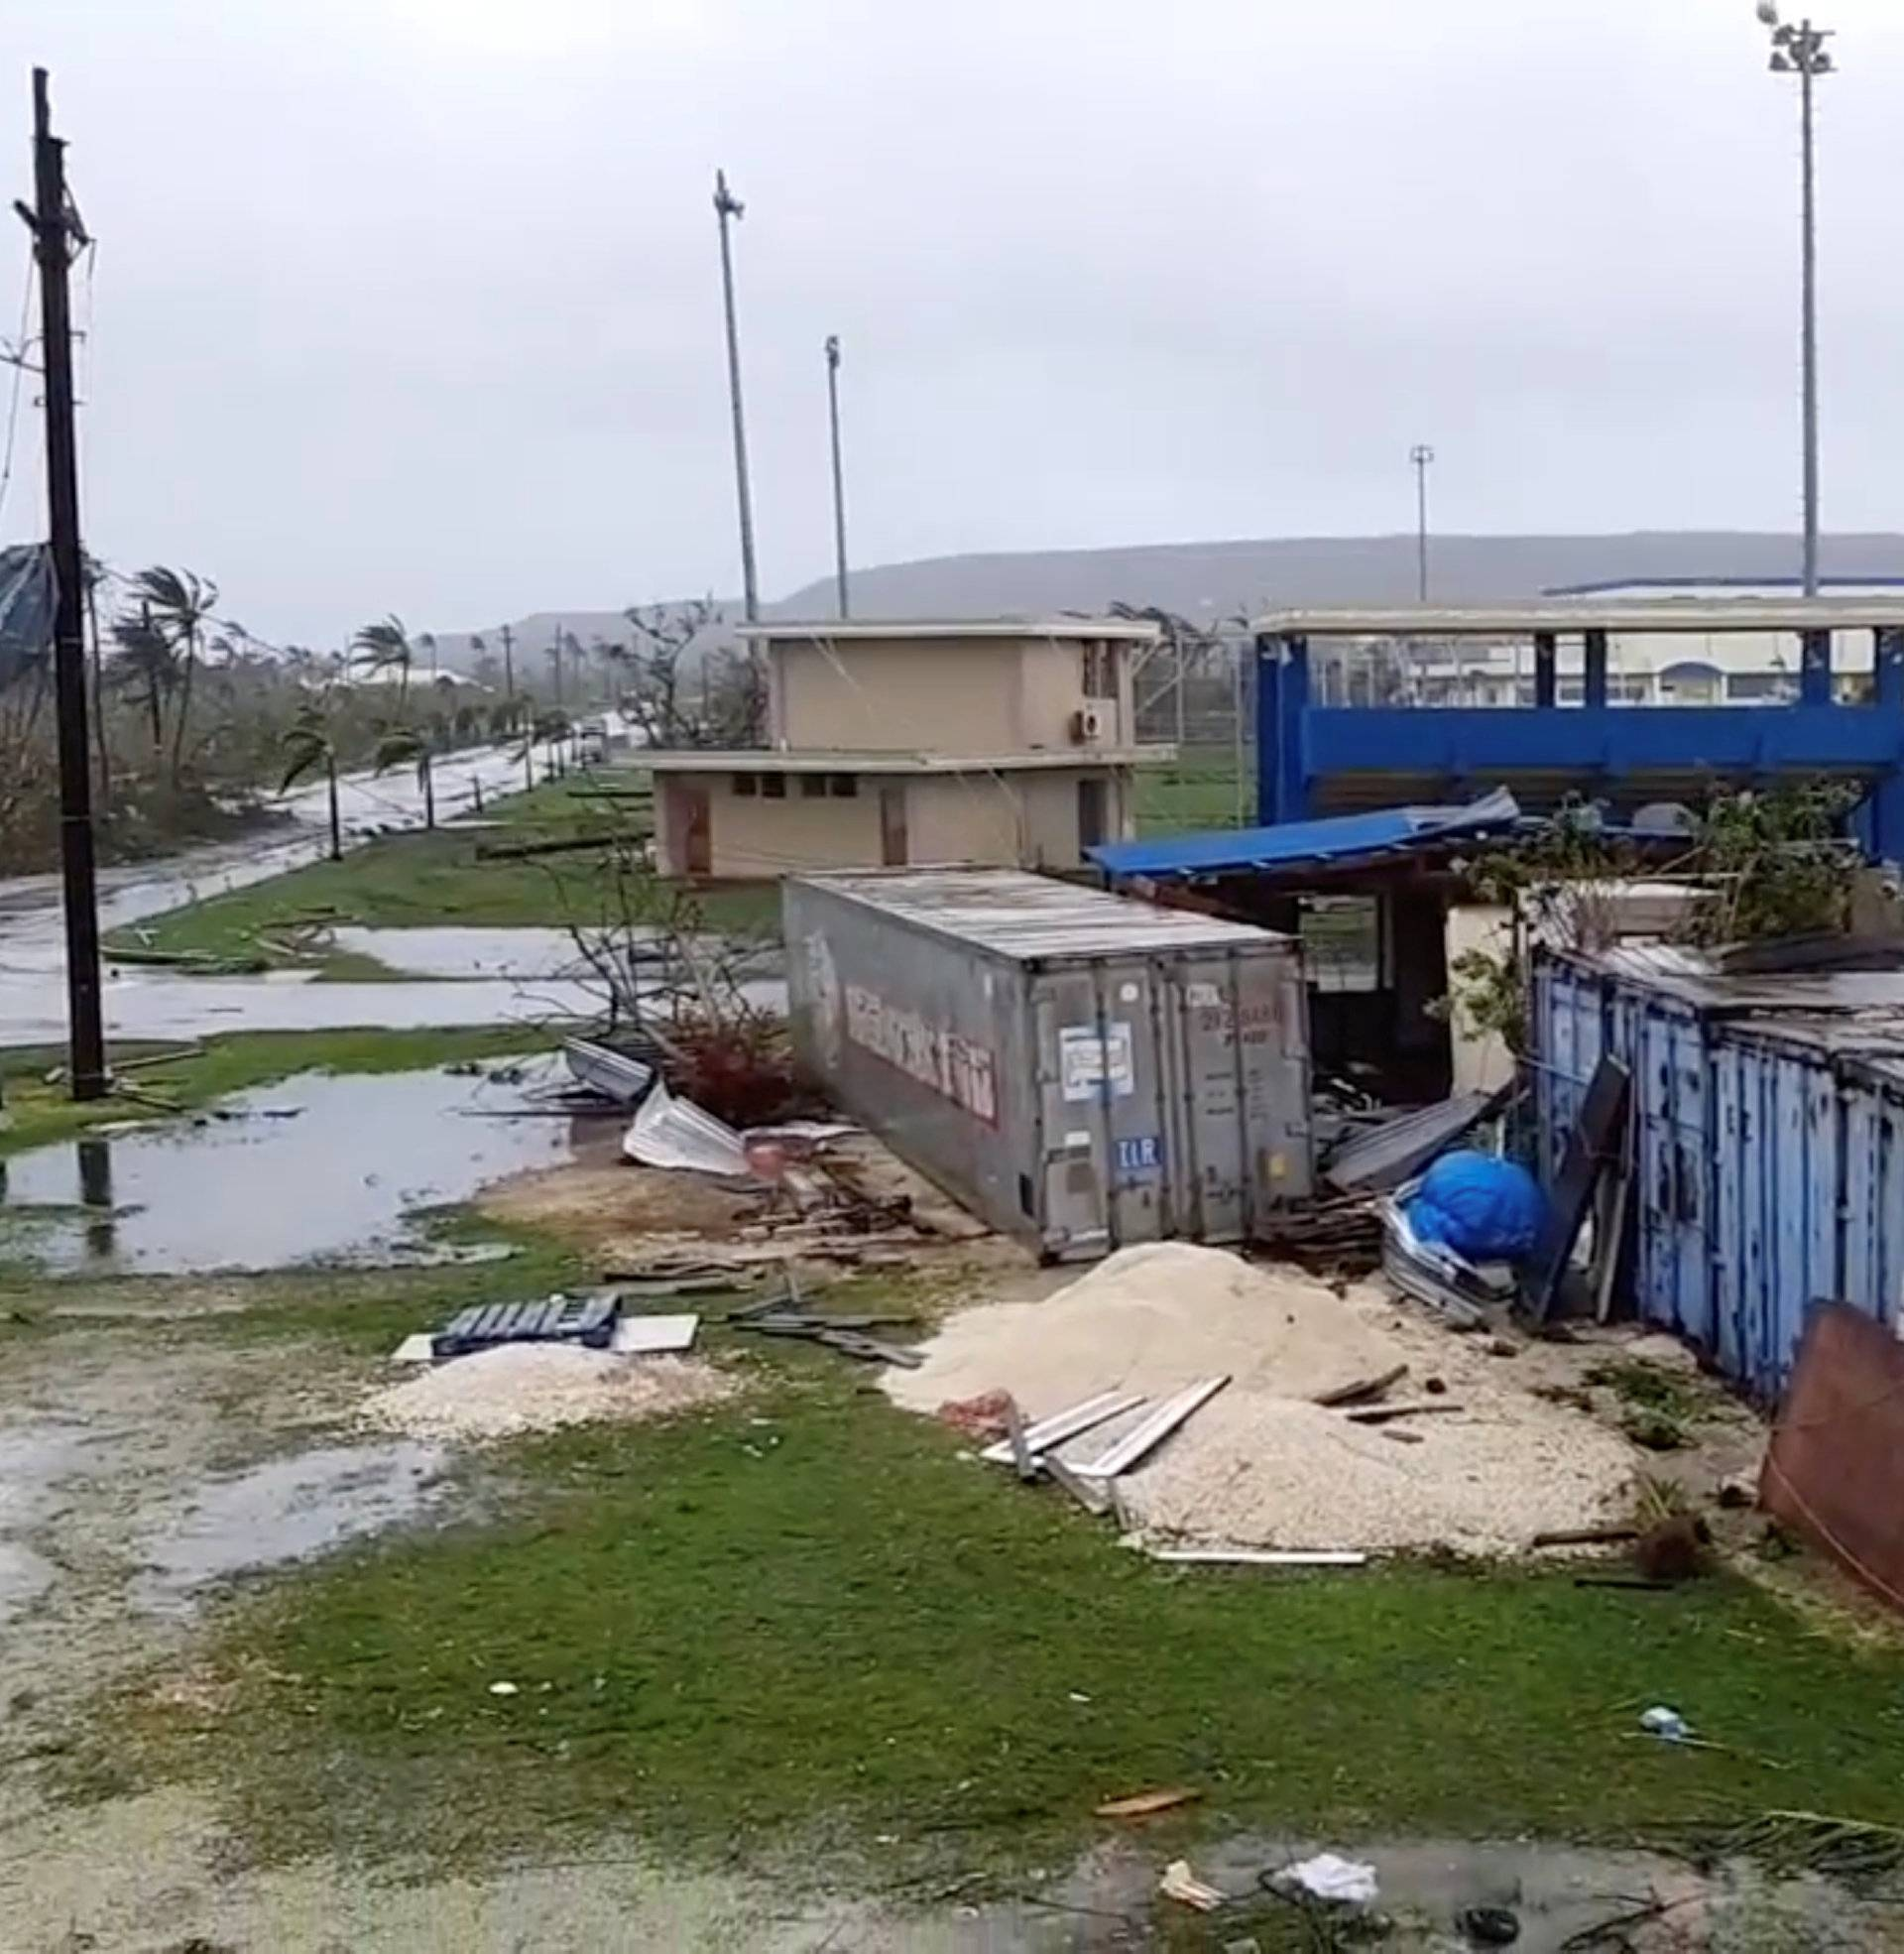 A view shows damages caused by Super Typhoon Yutu in Tinian